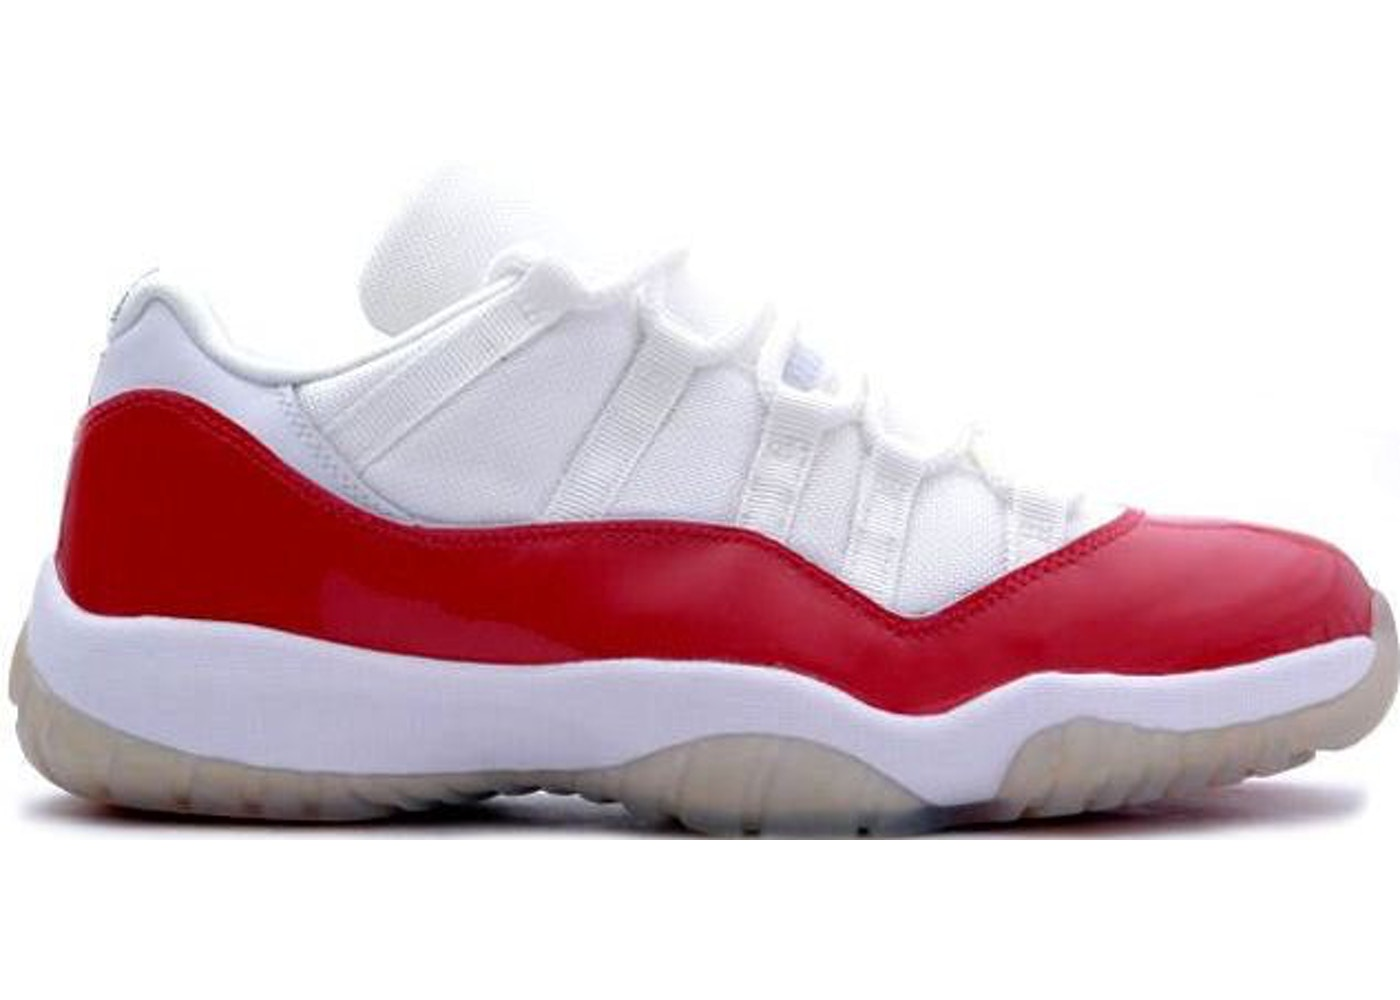 cf99745cc99 Sell. or Ask. Size: 9.5. View All Bids. Jordan 11 Retro Low Cherry ...